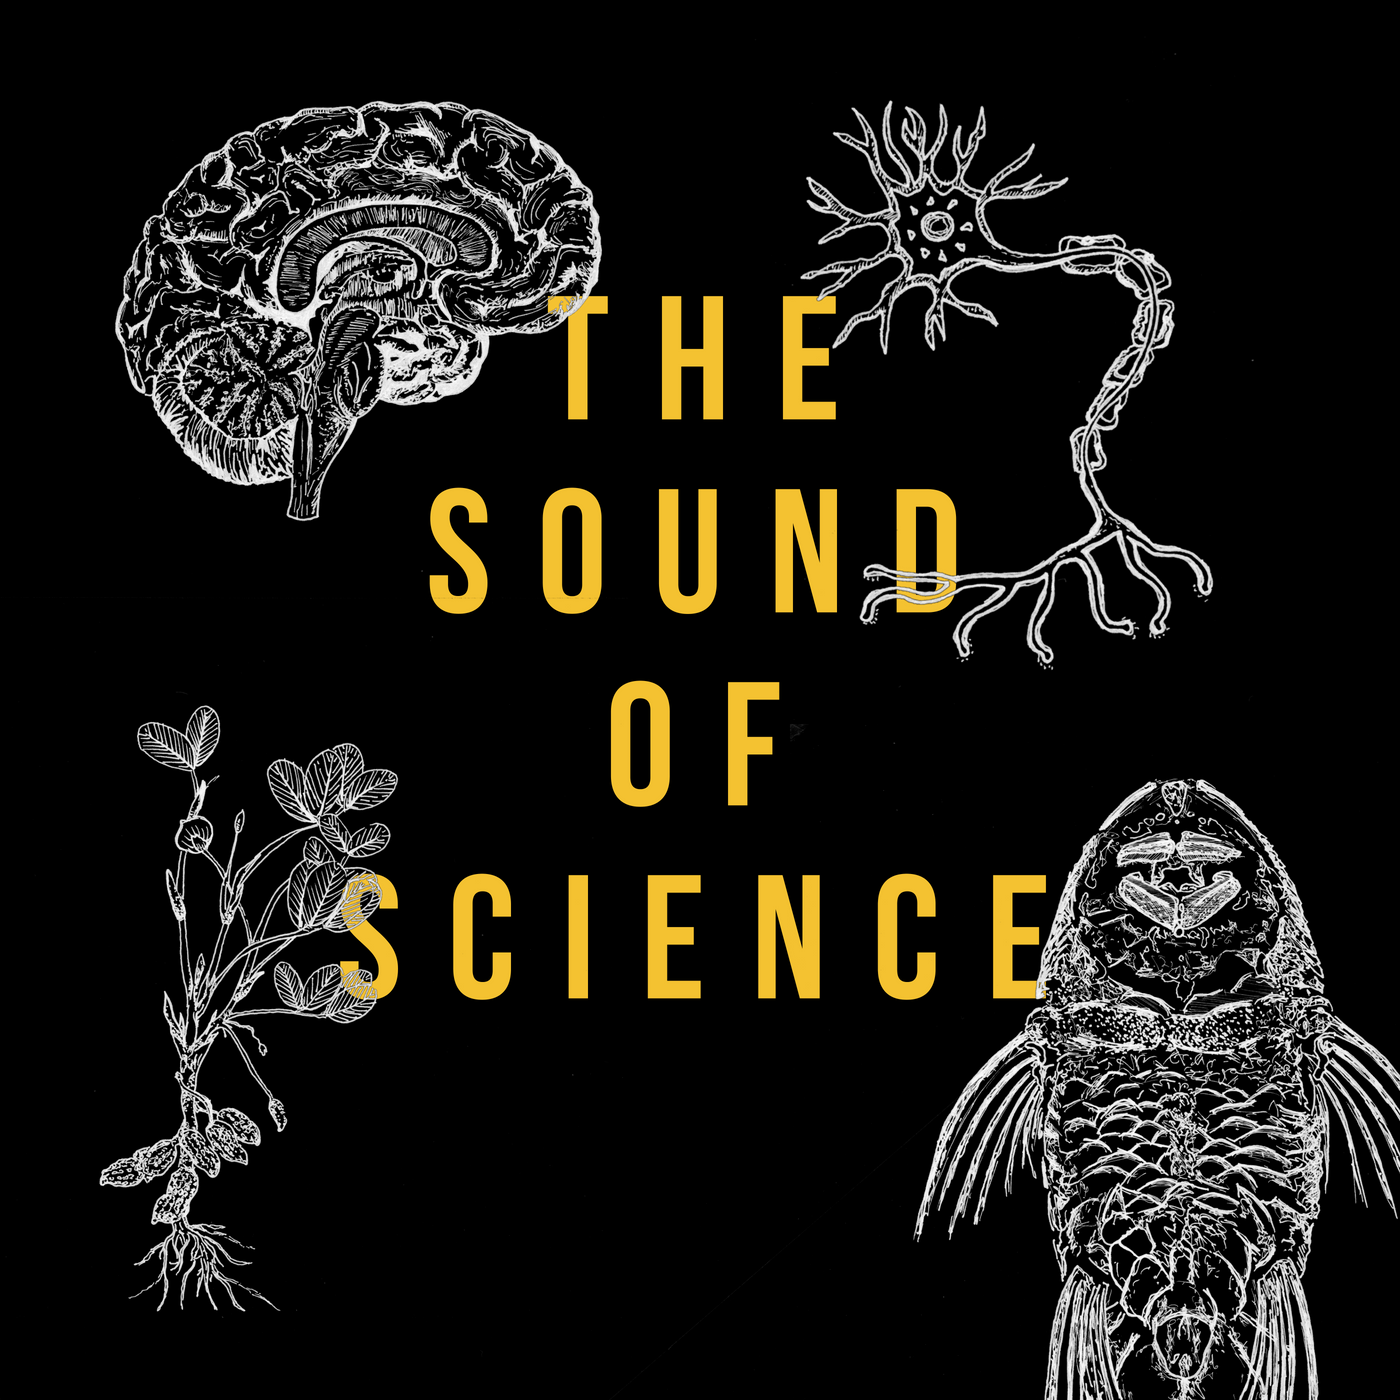 Golden Hornet's The Sound of Science featuring Jeffrey ...